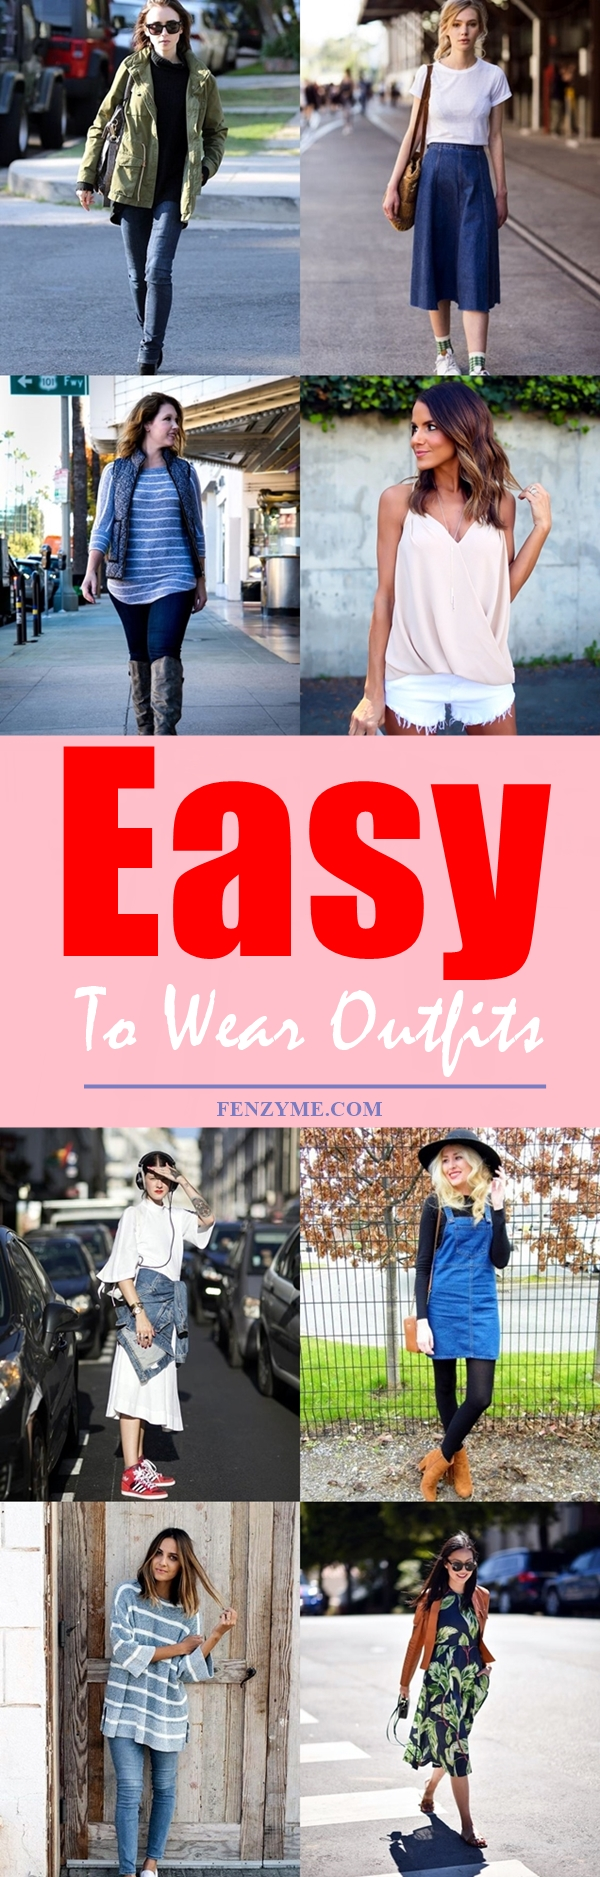 easy-to-wear-outfits-2-tile